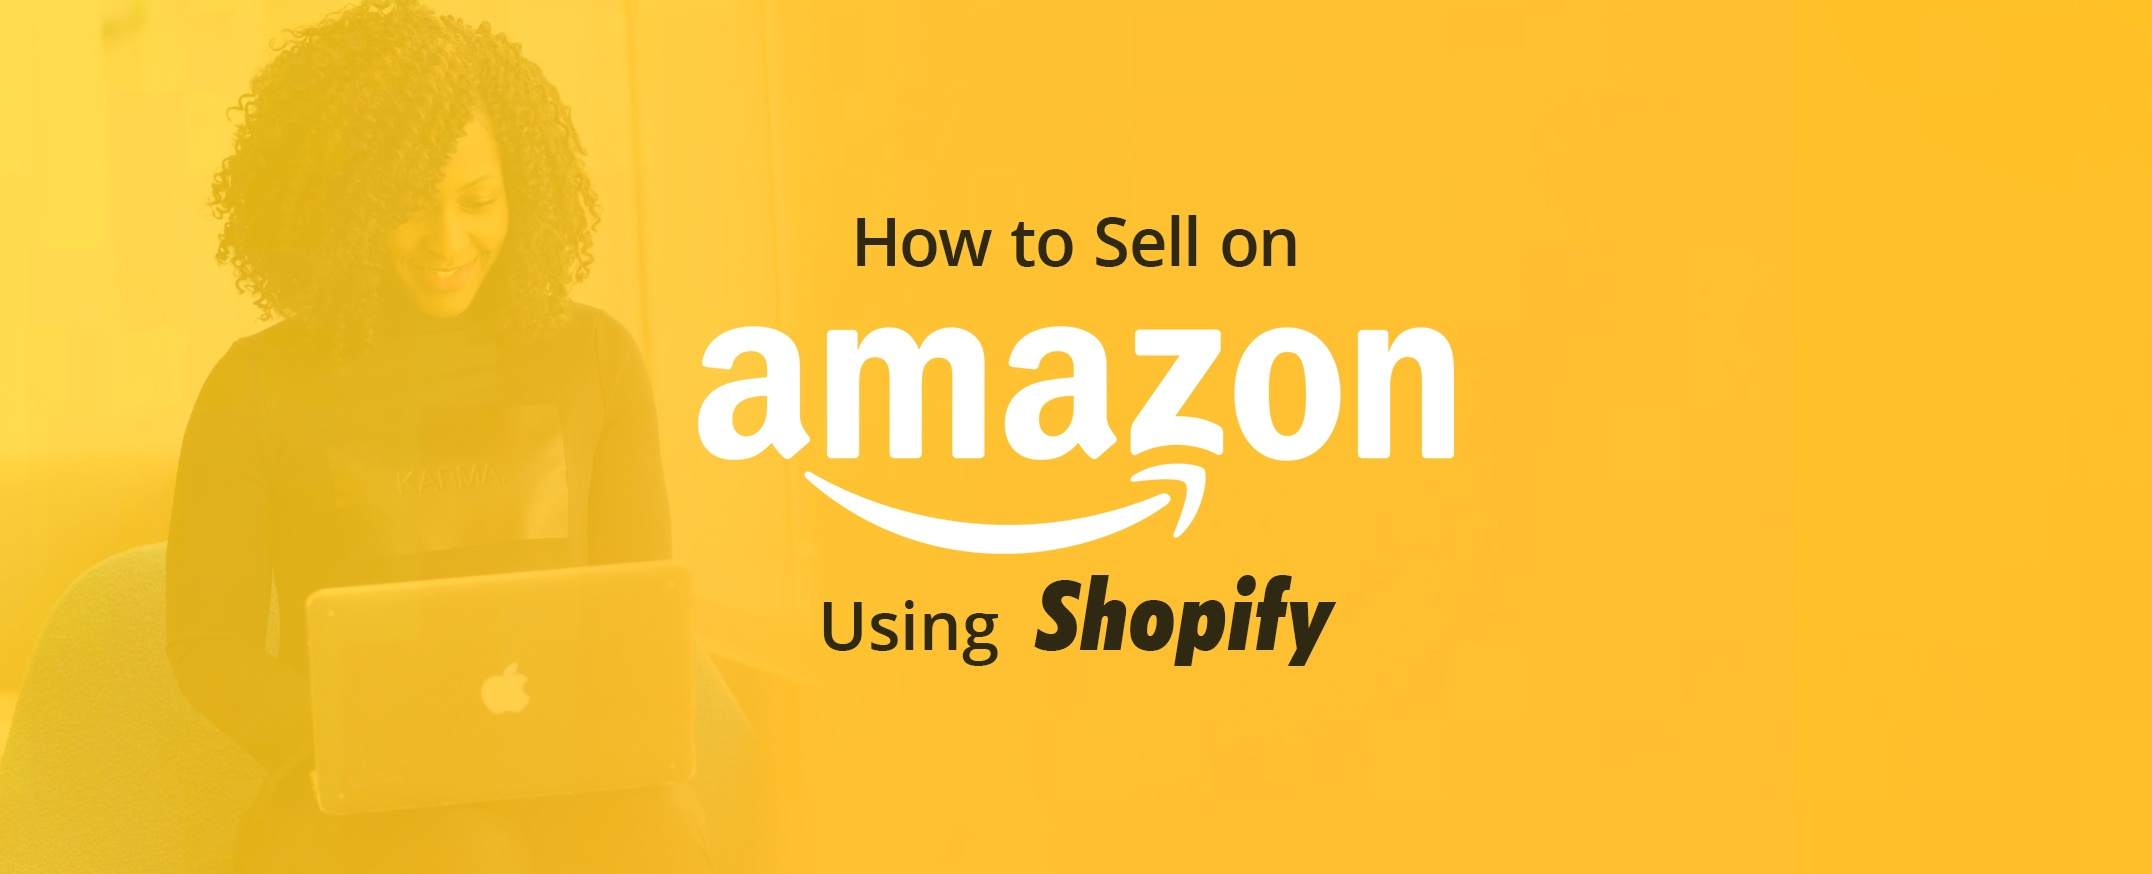 How-to-Sell-on-Amazon-Using-Shopify-1